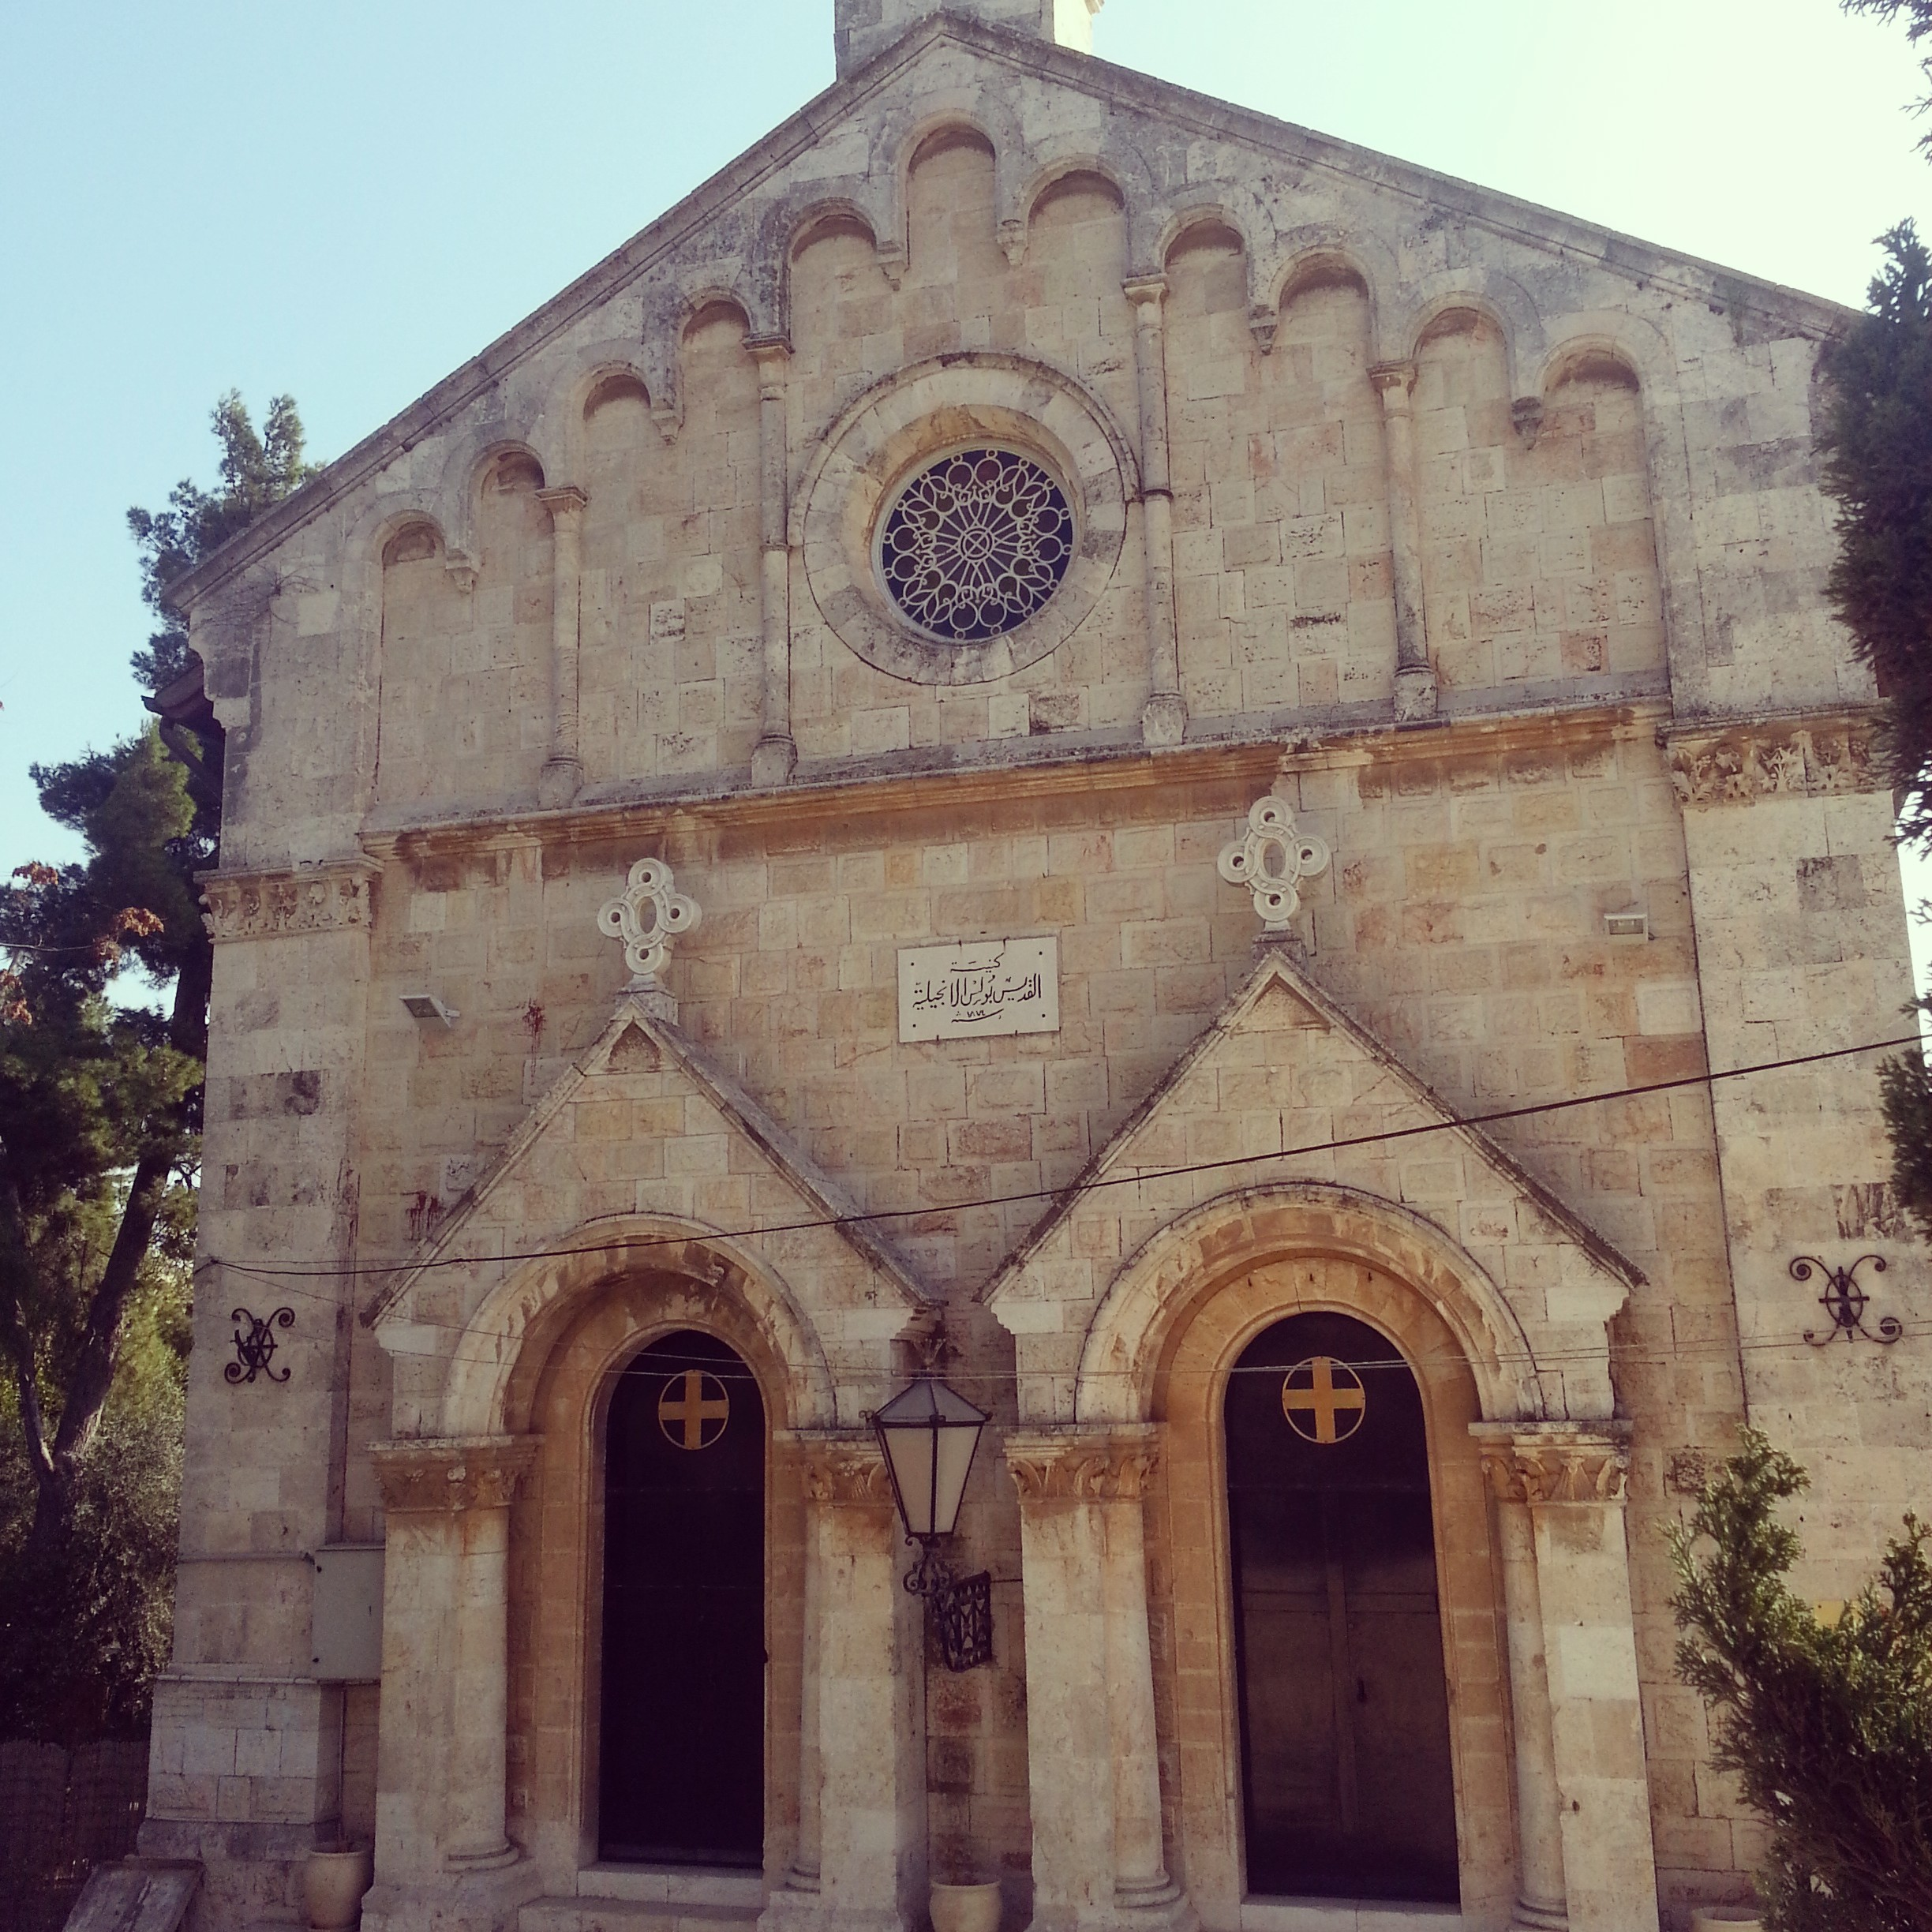 St Paul's Church, Jerusalem